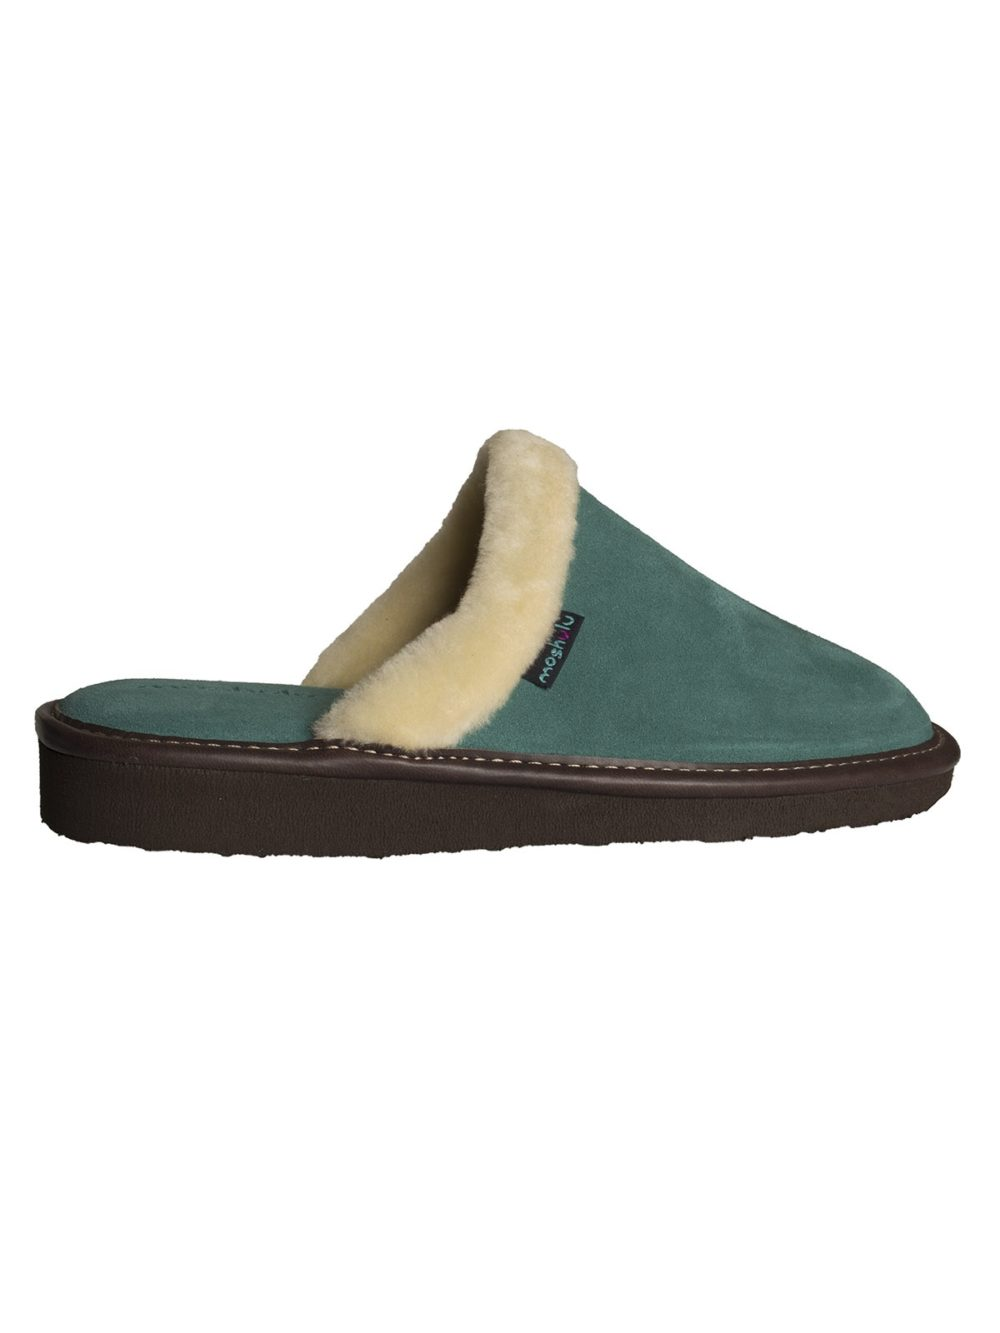 Vitoria Slipper Moshulu Katie Kerr Women's clothing Women's Slippers